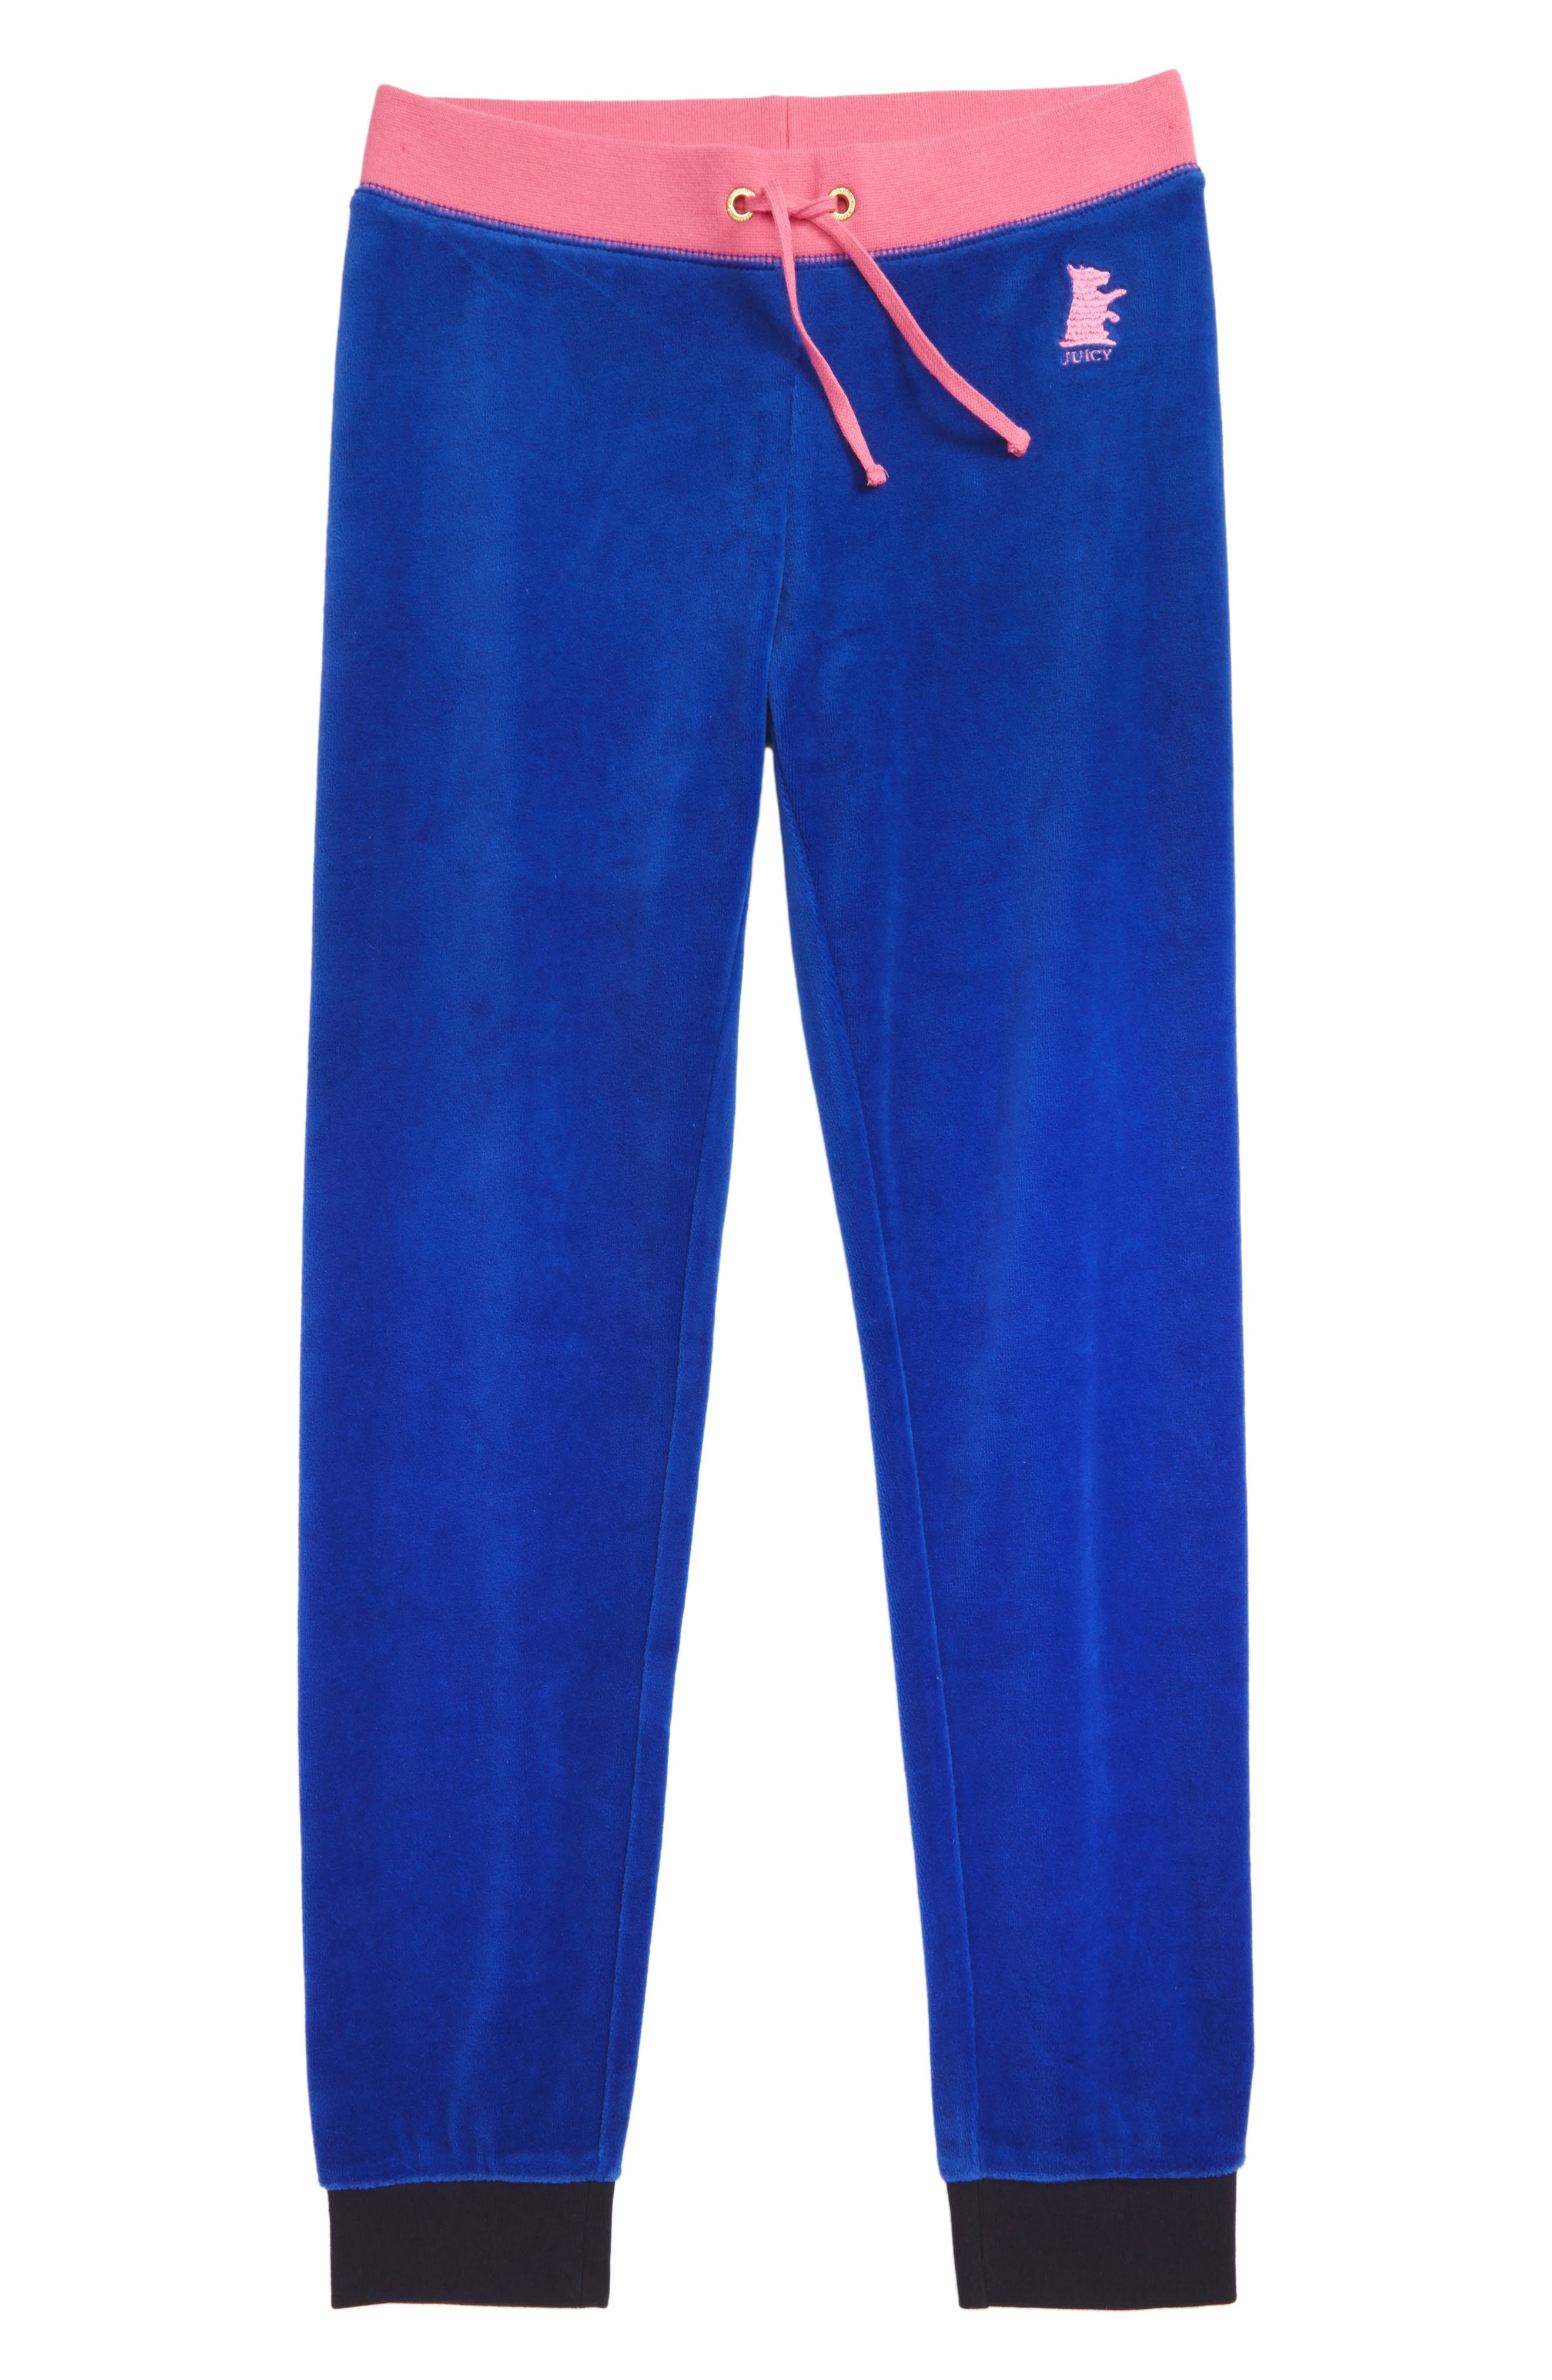 Zuma Velour Pants,                         Main,                         color, BLUE NIGHT